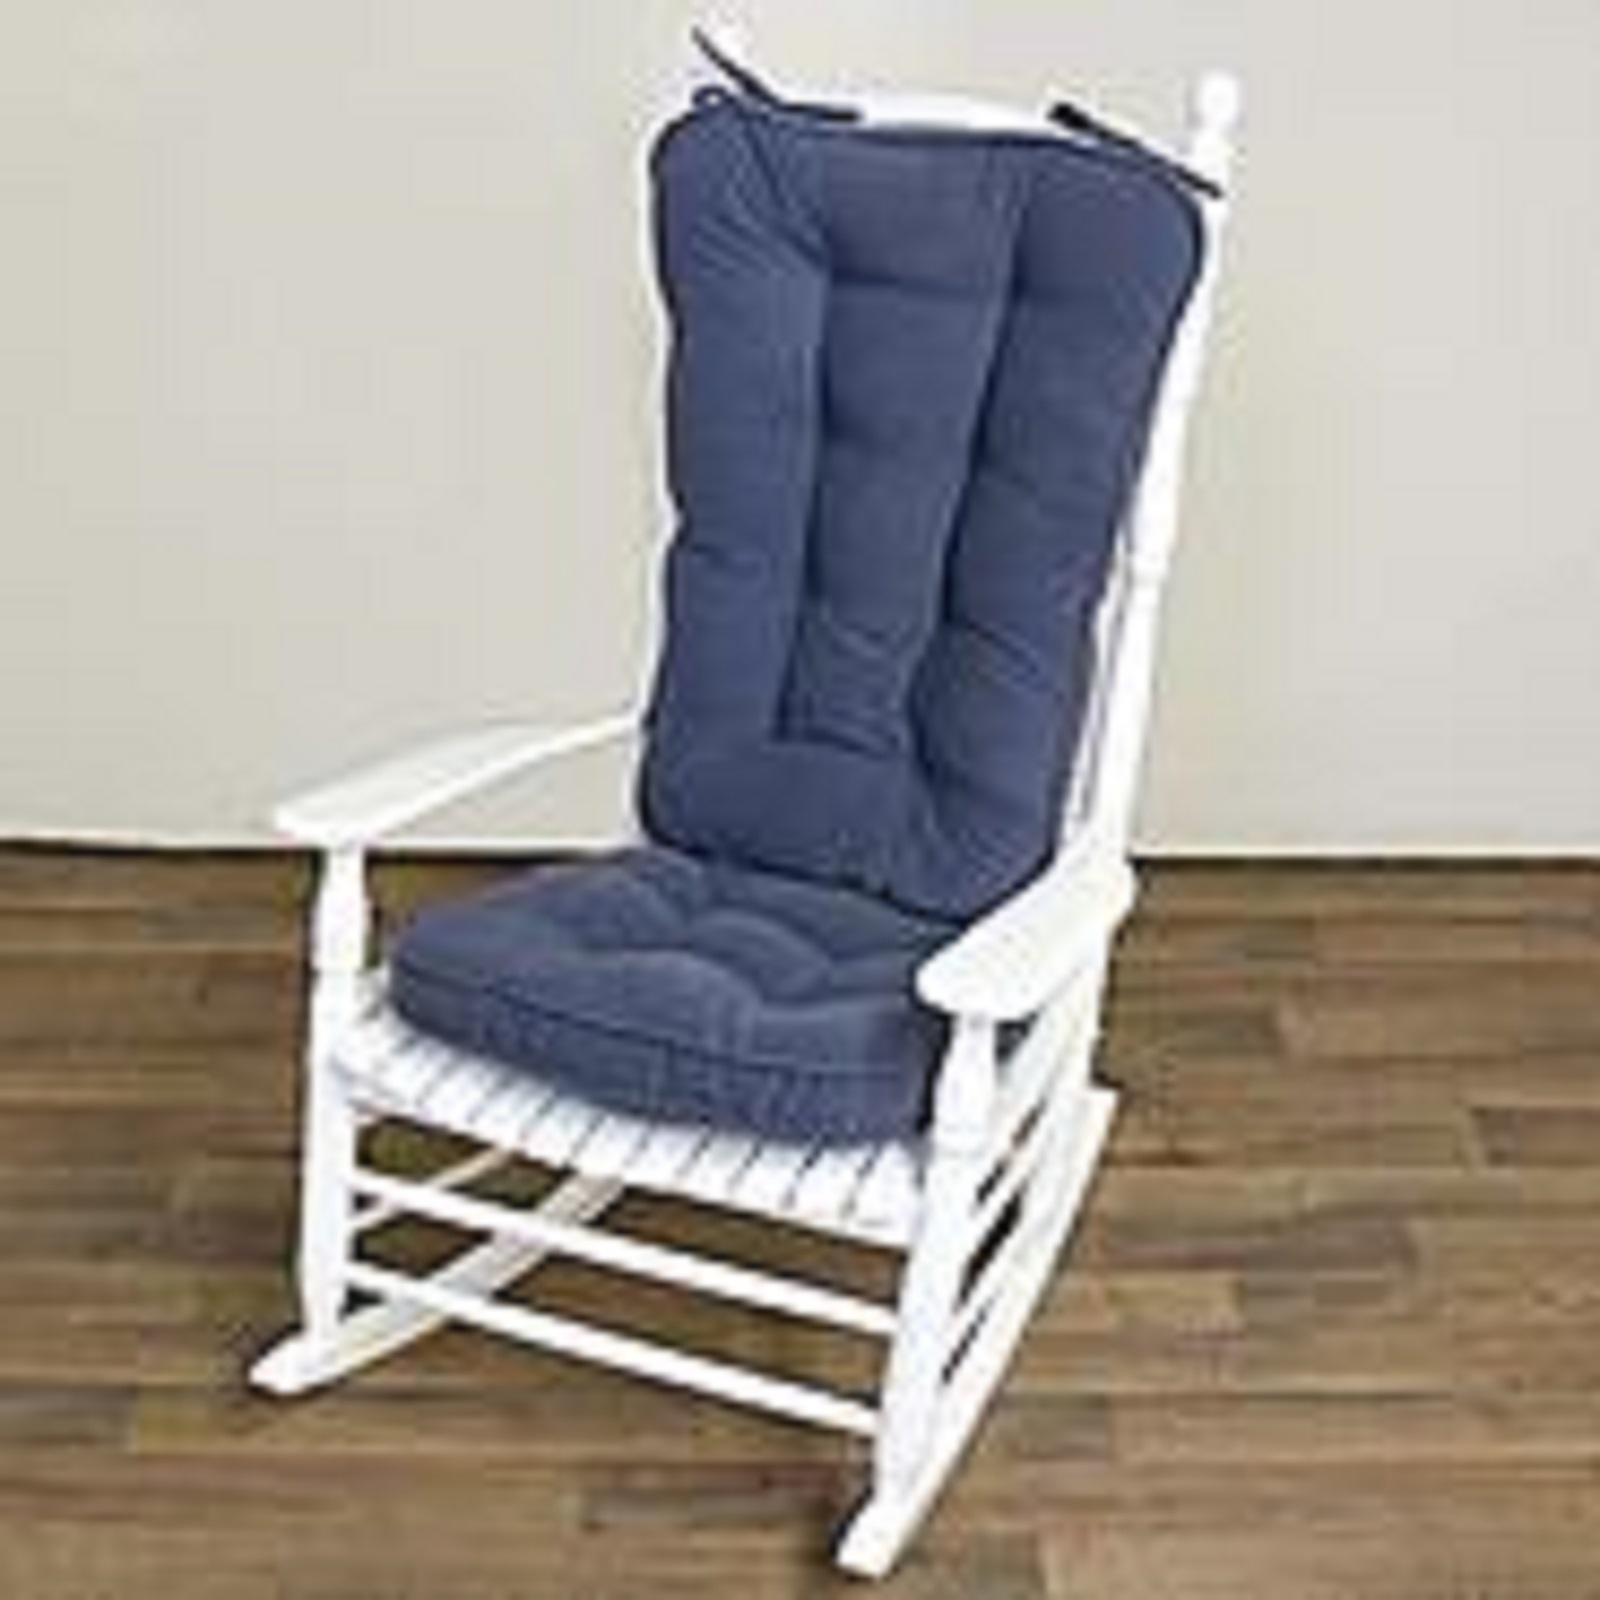 oversized rocking chair cushions pottery barn table and chairs greendale home fashions hyatt jumbo cushion